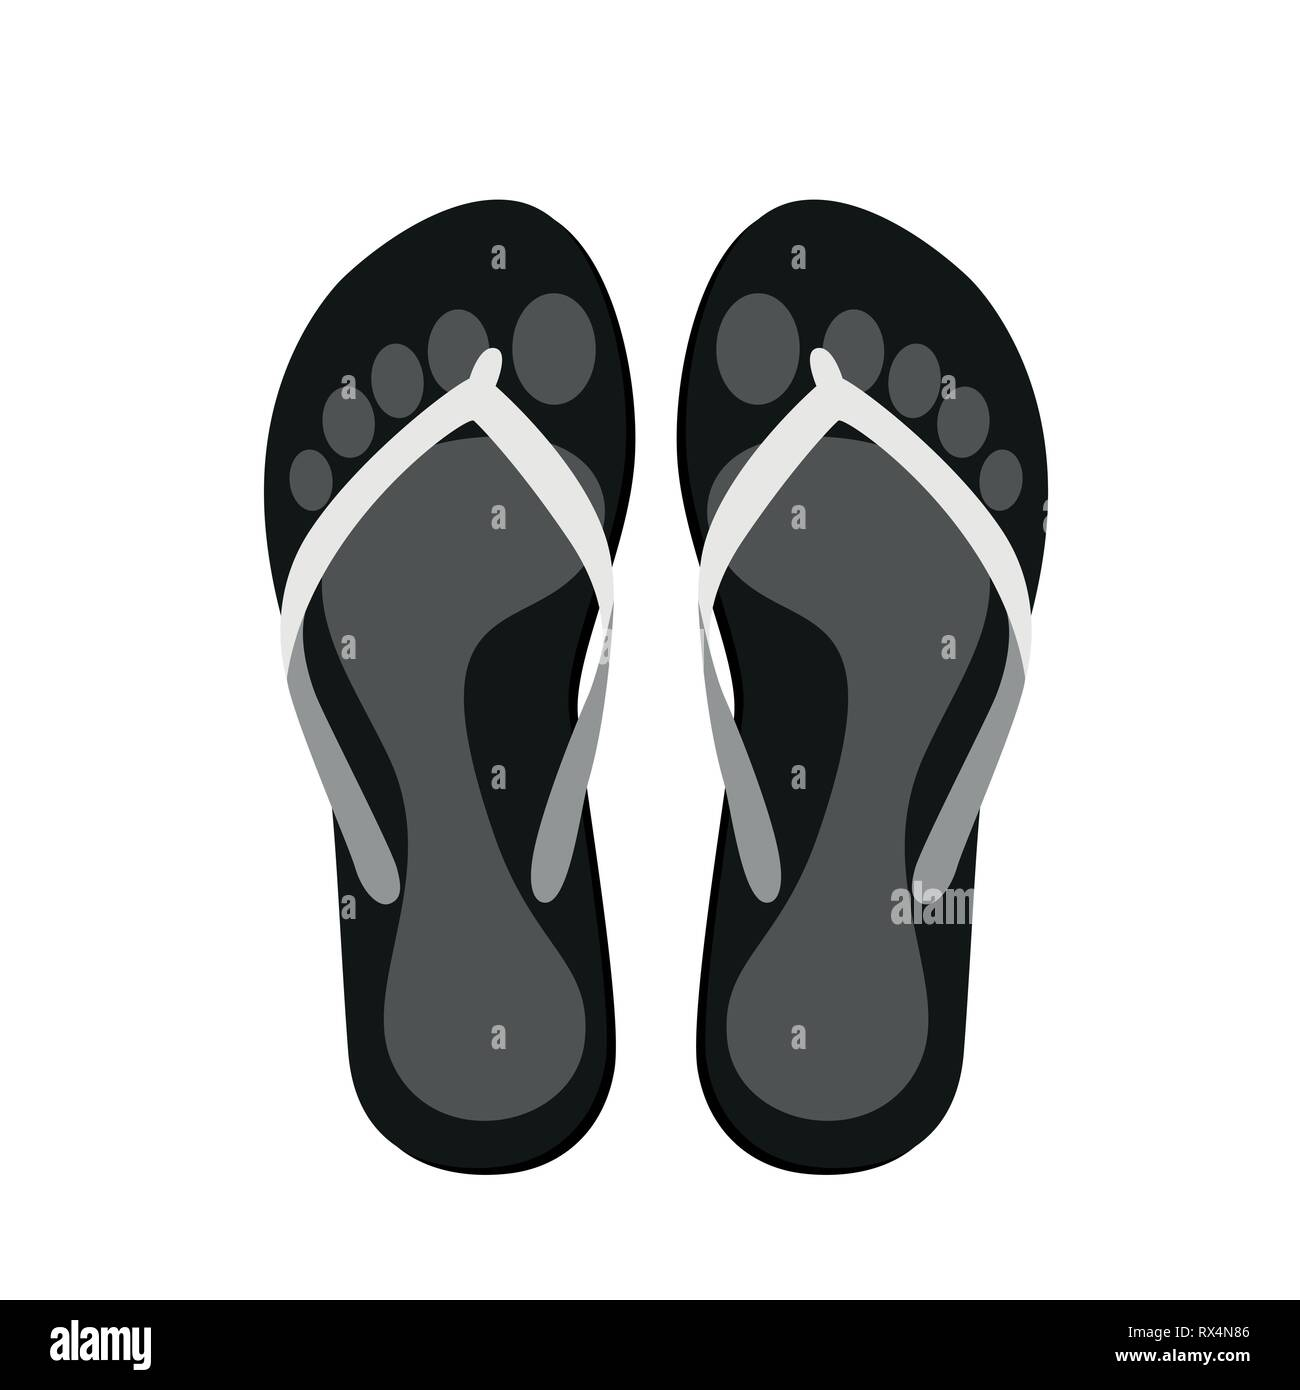 ac5042b1e652 flip flops with with footprints pictogram isolated on a white background  vector illustration EPS10 - Stock